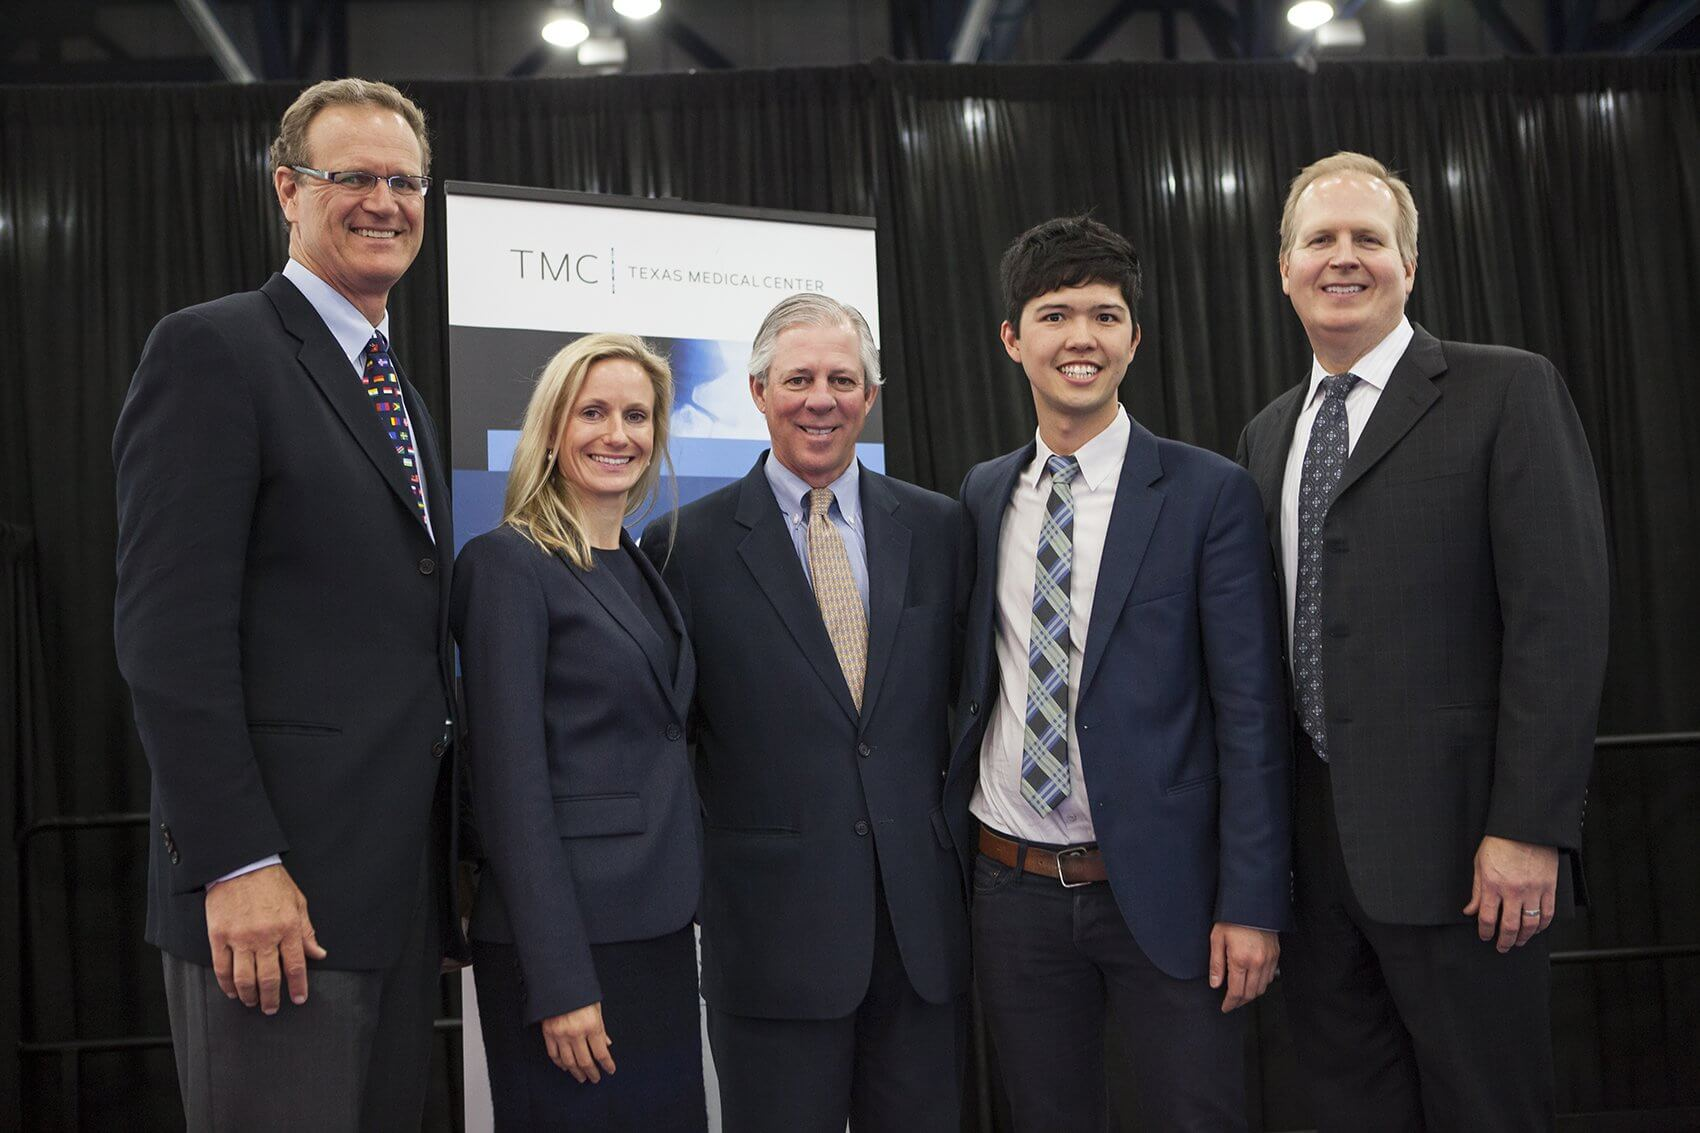 Milton McColl, M.D., chief executive officer of Gauss Surgical; Katherine Forth, Ph.D., chief executive officer of iShoe; Robert C. Robbins, M.D., chief executive officer of the Texas Medical Center; Niko Skievaski, co-founder of Redox and Mitchell Eggers, Ph.D., president and chief executive officer of Adient Medical.